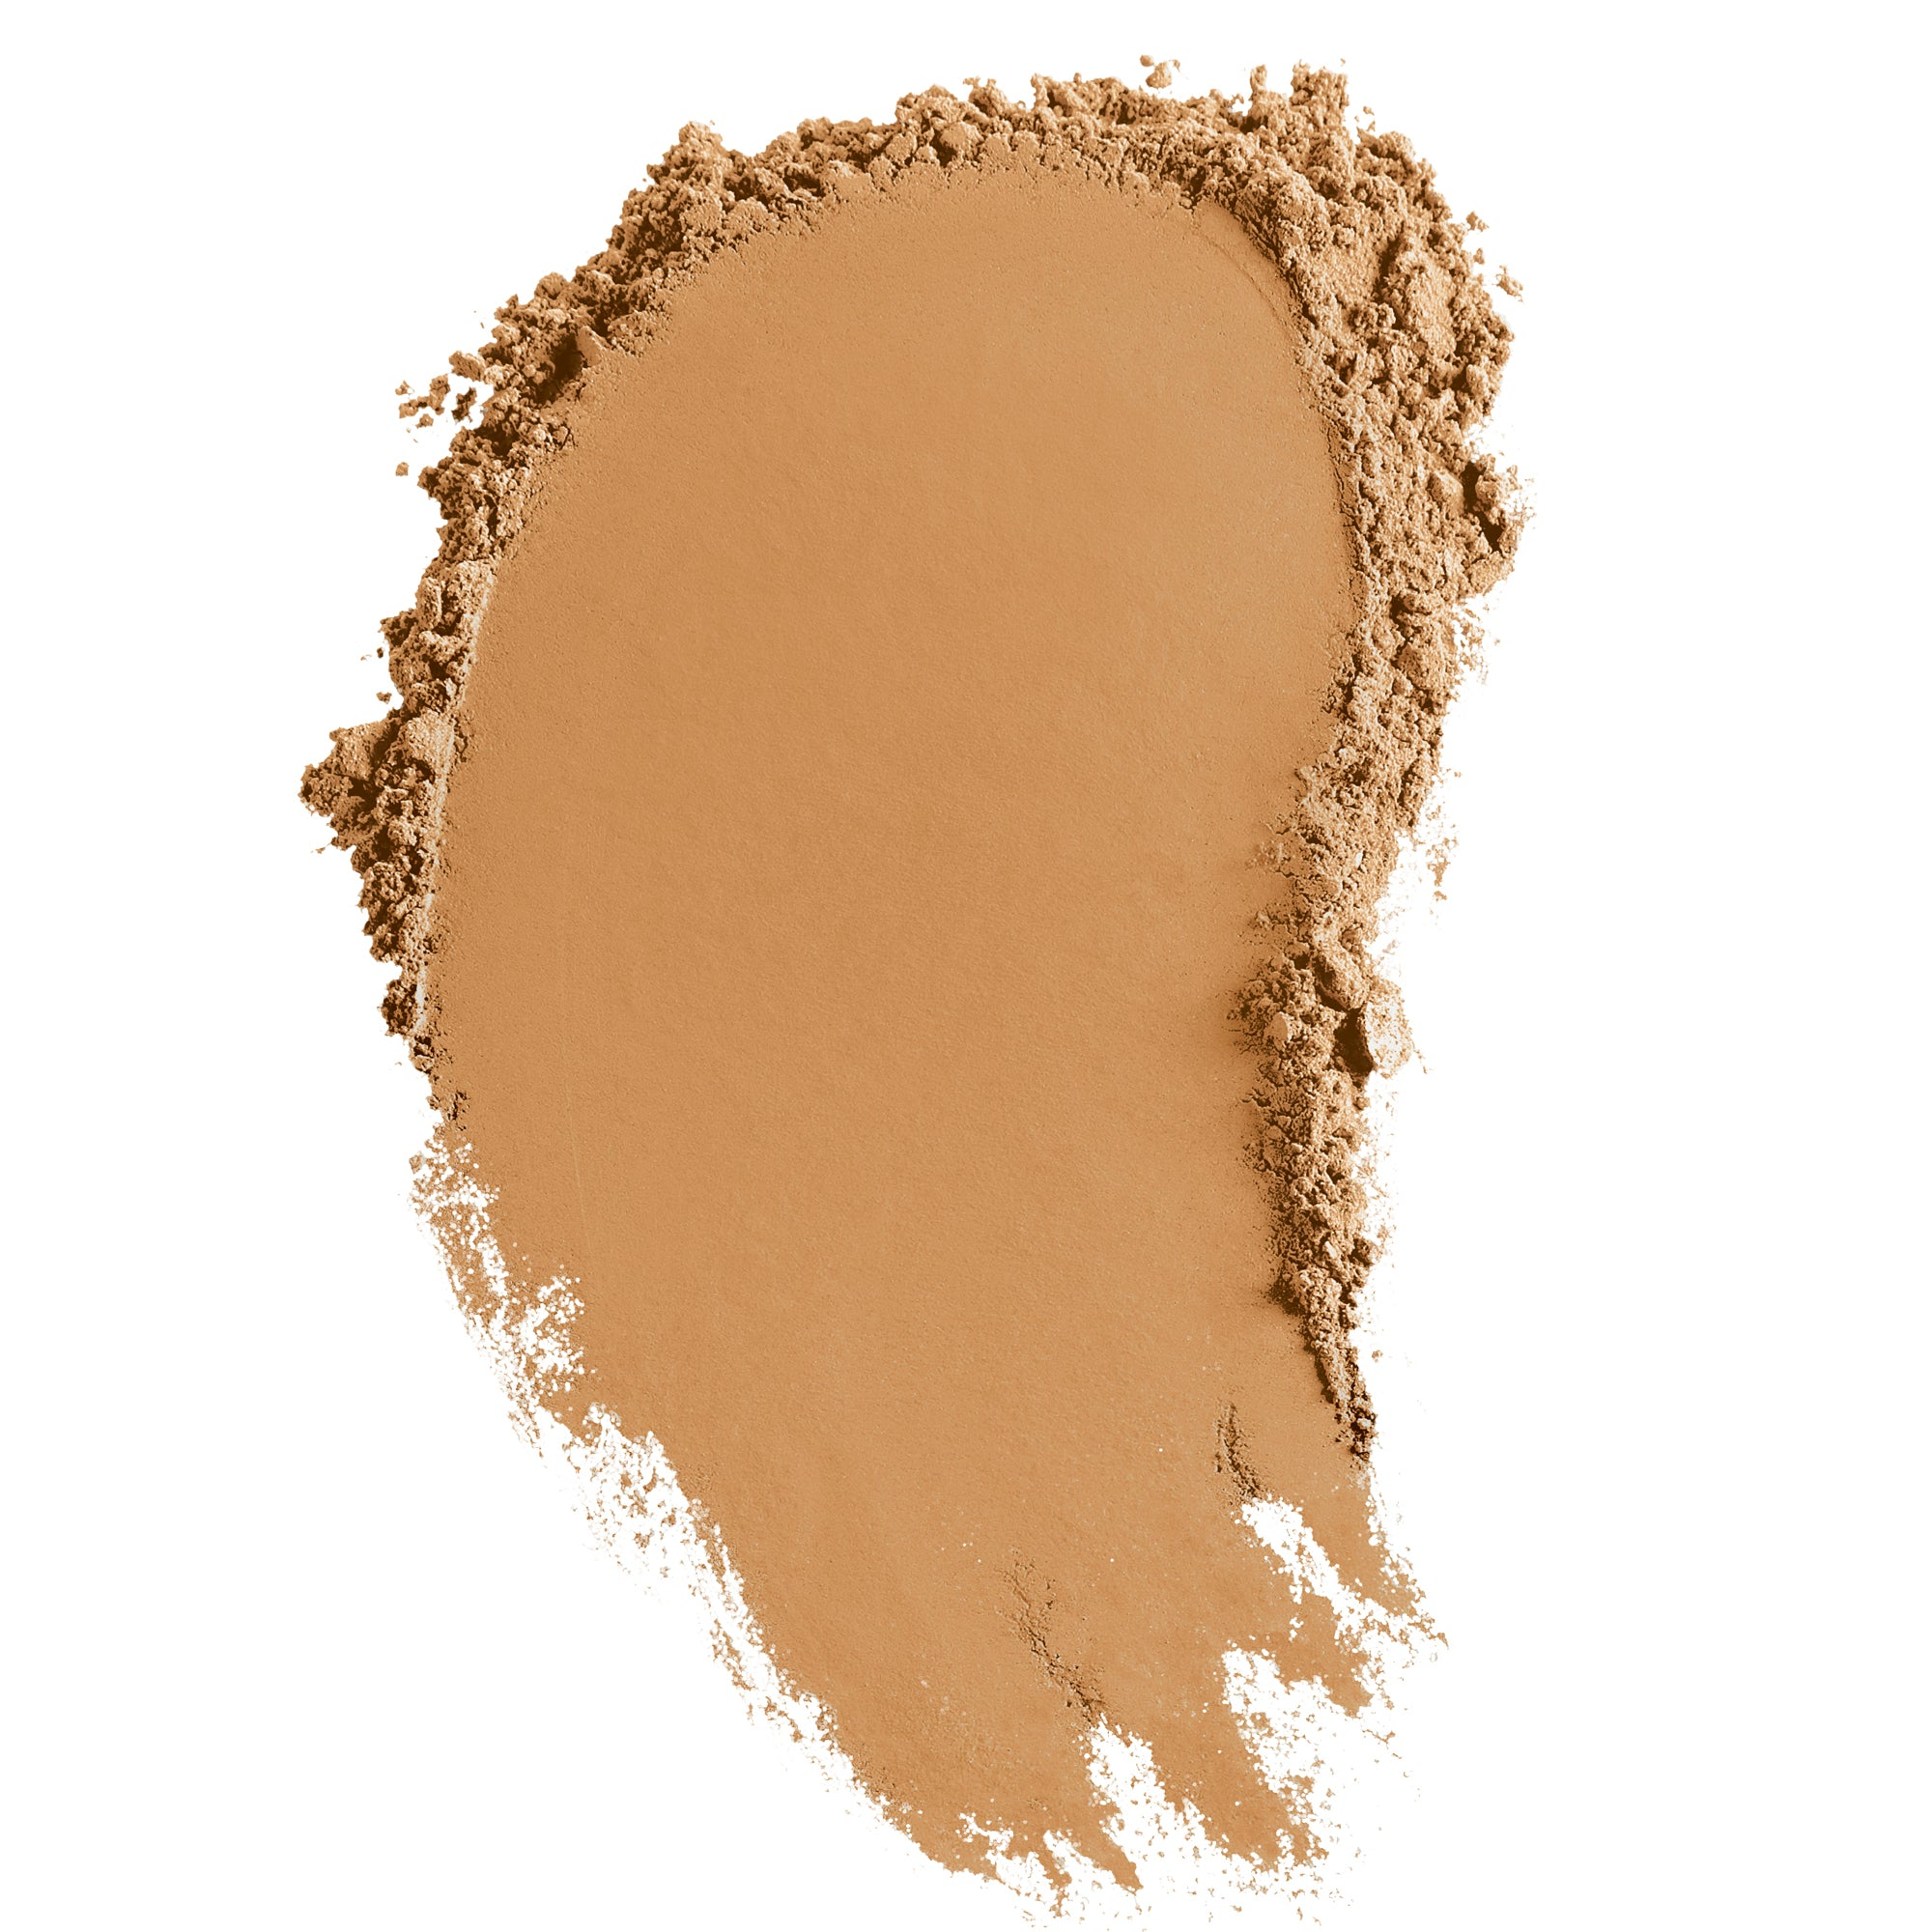 Matte Foundation SPF 15 Neutral Tan Matte 21